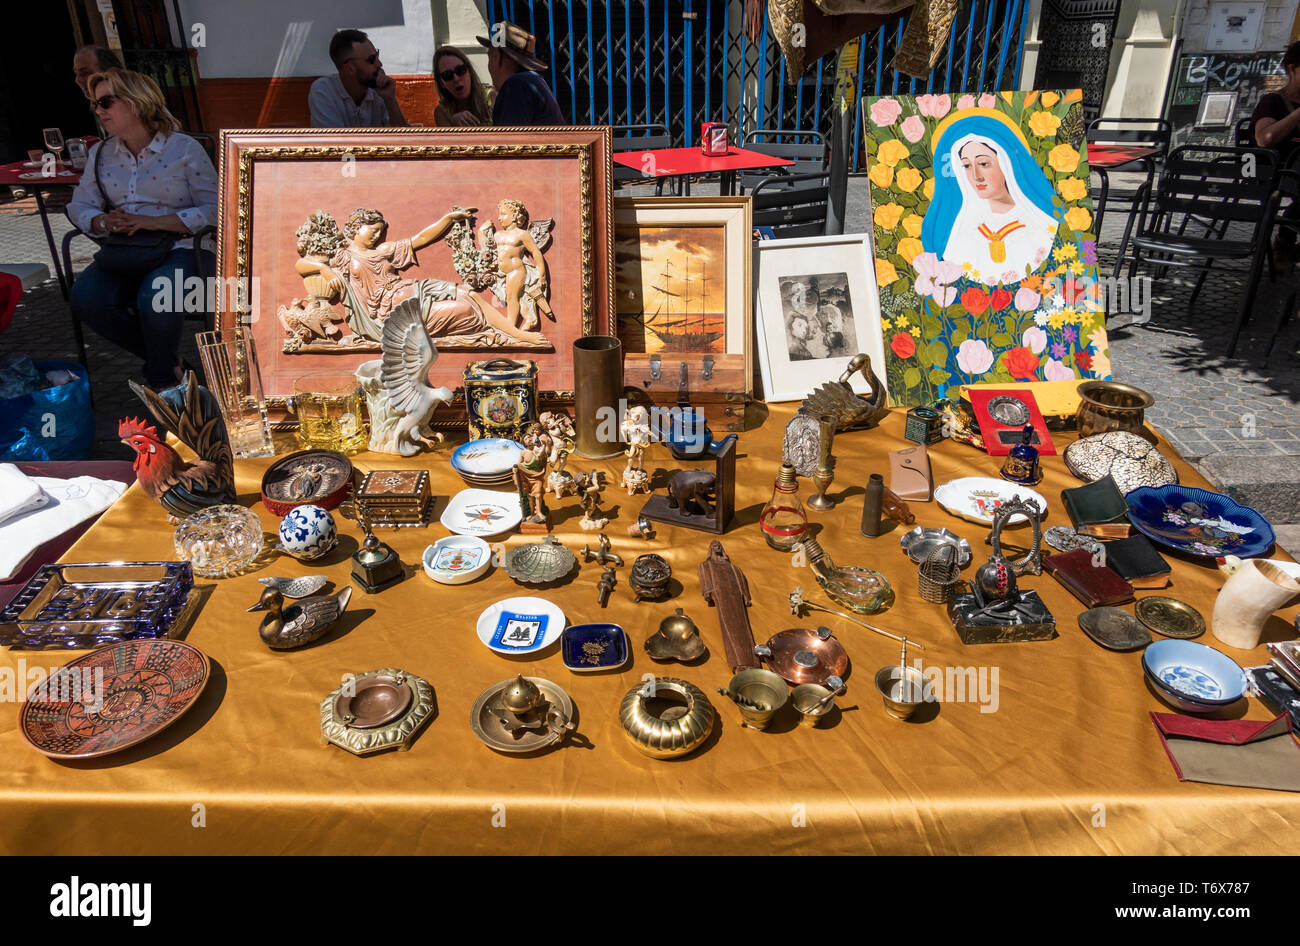 A mix of items for sale at the Thursday Market on Calle Feria in Seville - Stock Image